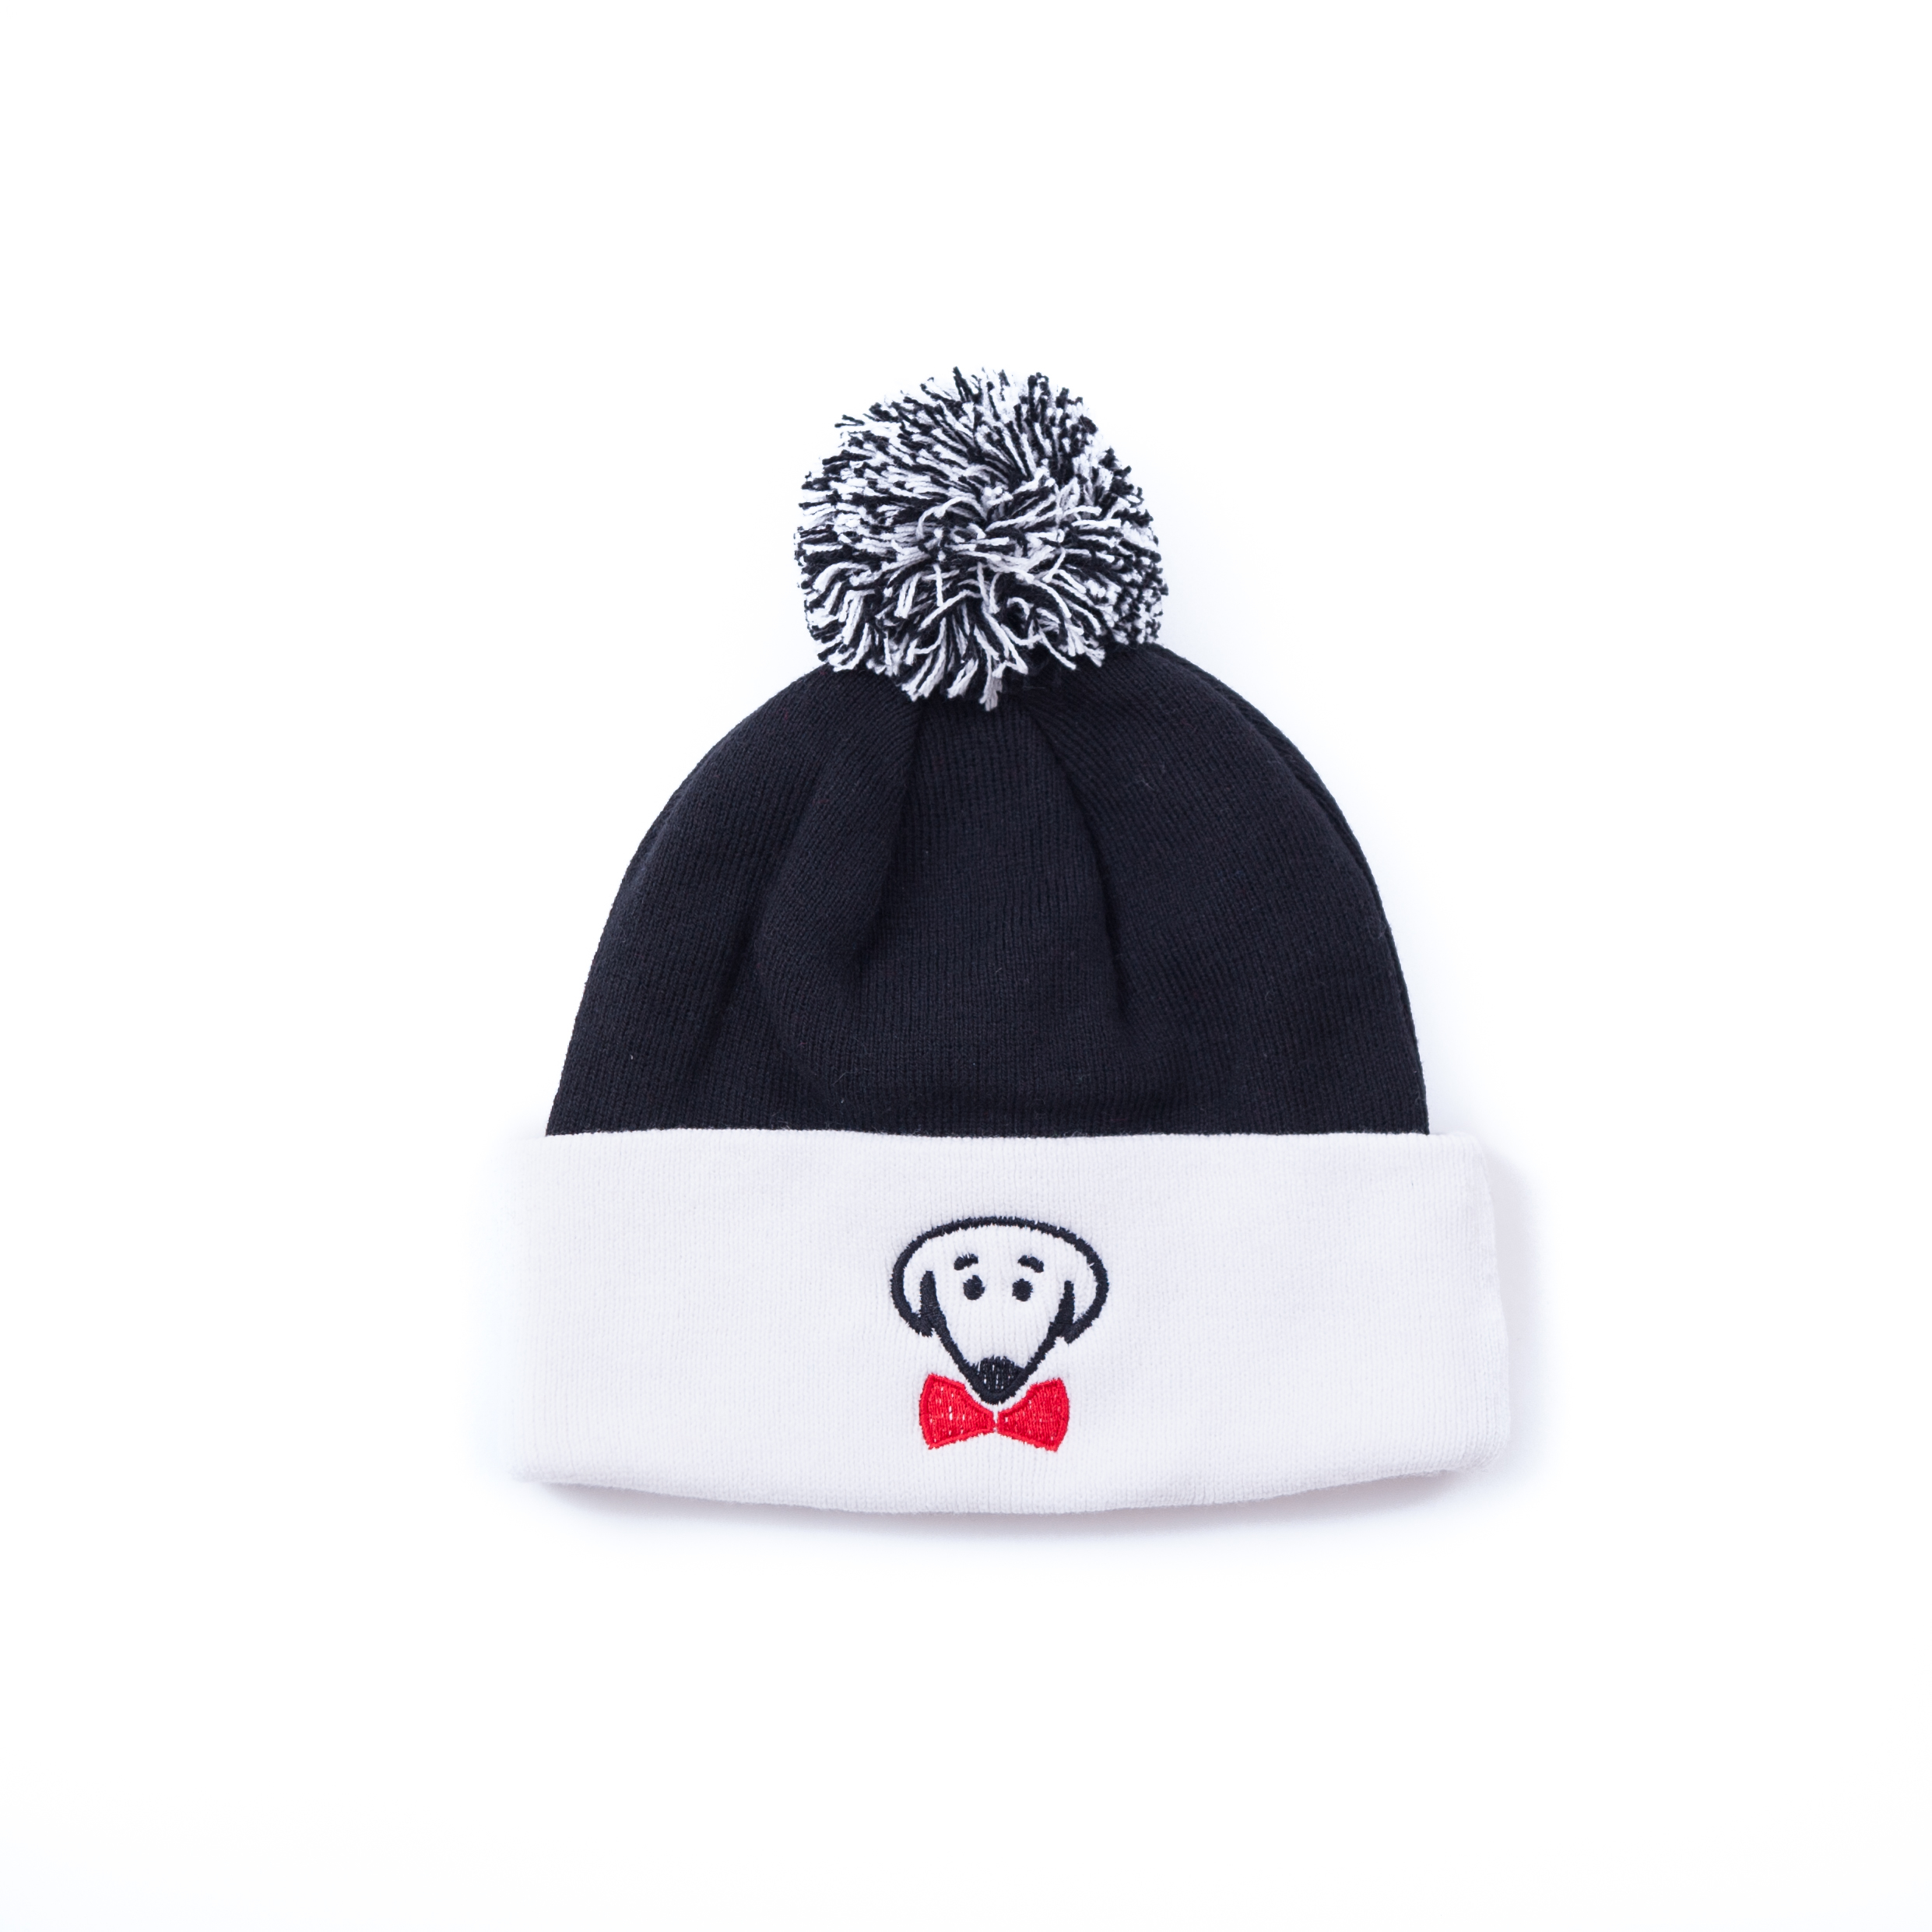 Black and white winter knit hat